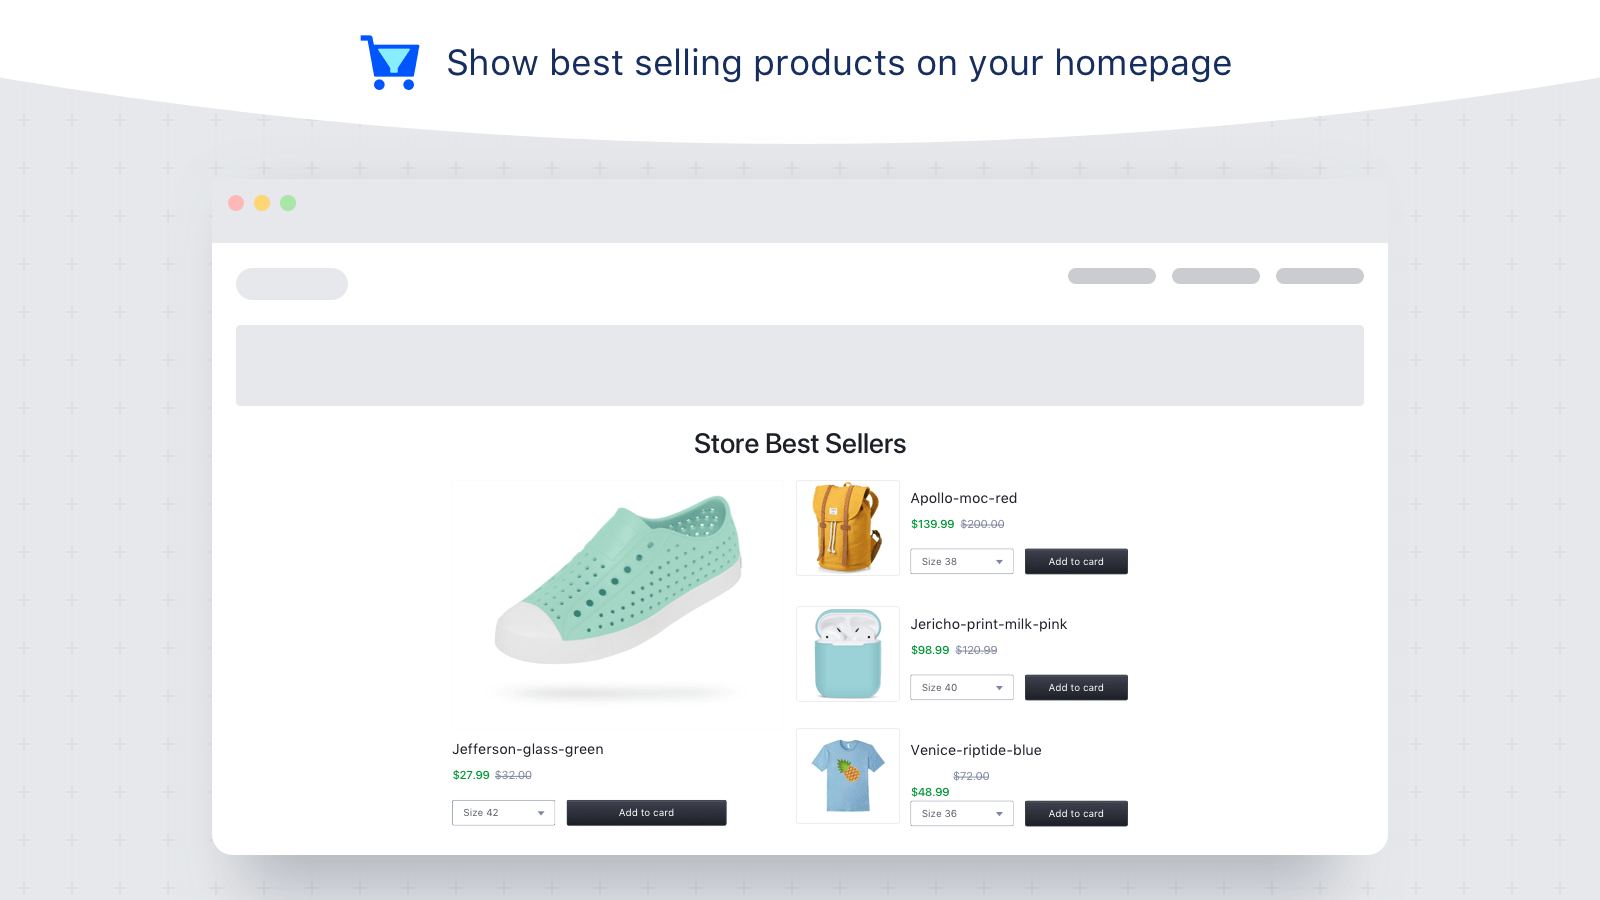 Personalized Recommendations by Beeketing